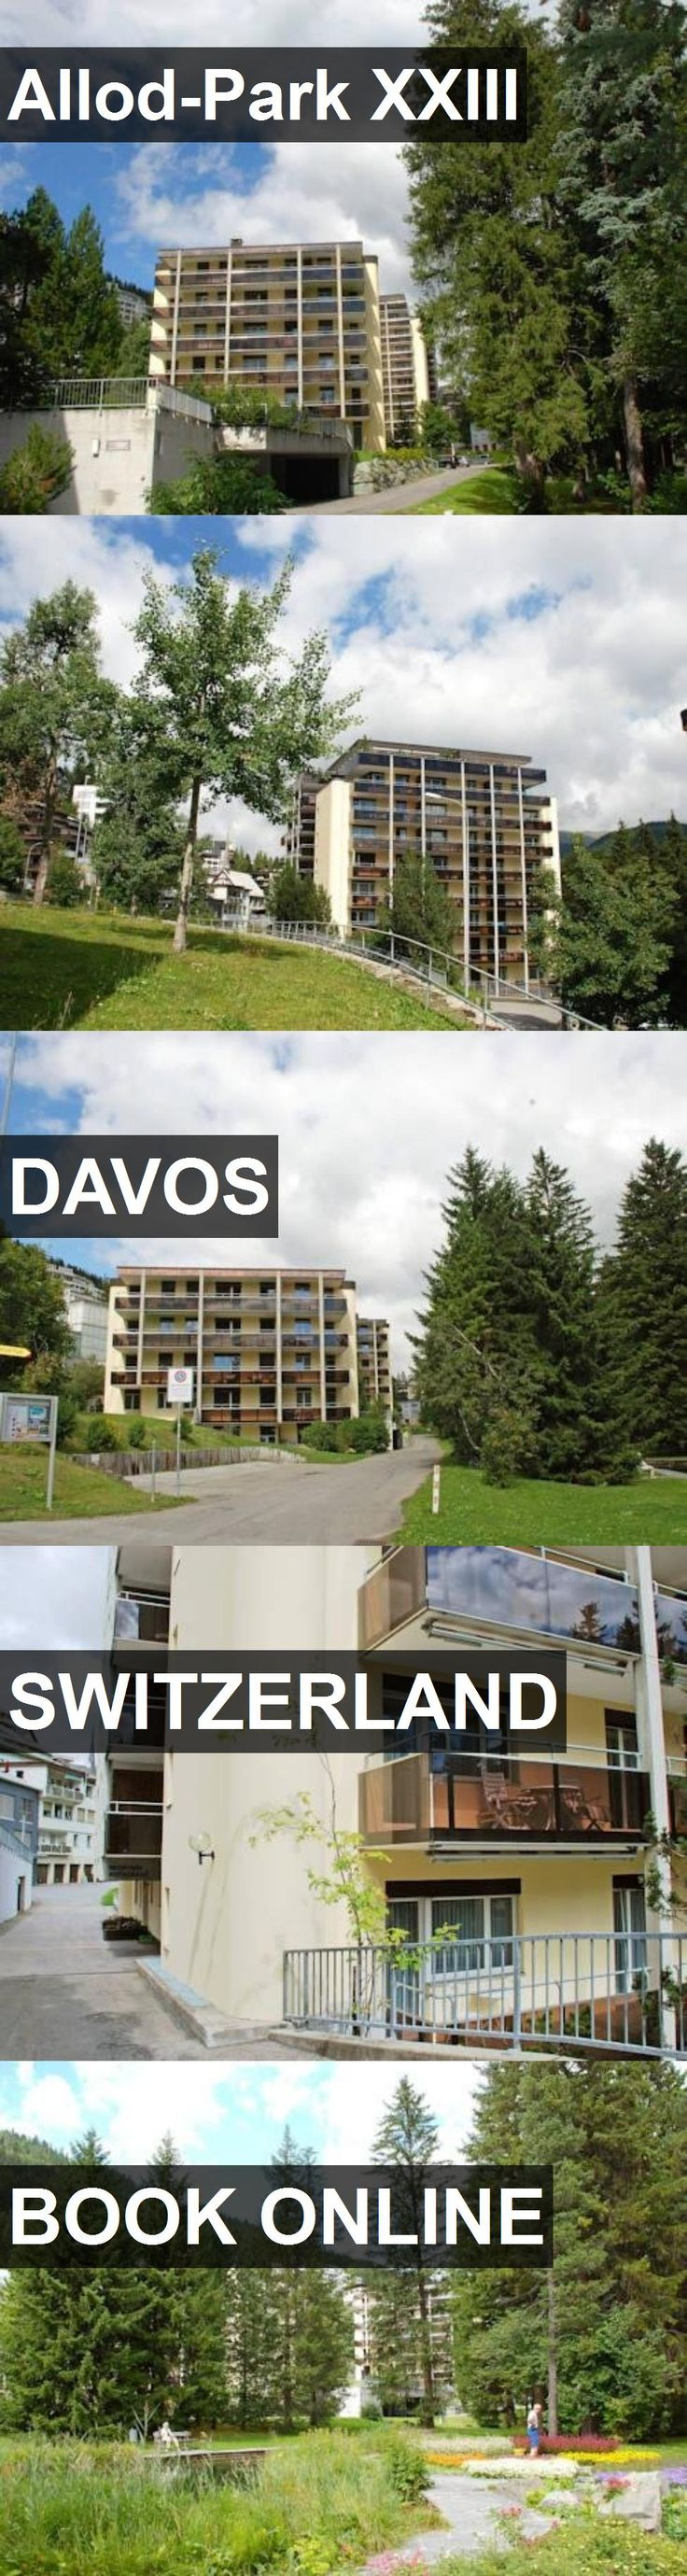 Hotel Allod-Park XXIII in Davos, Switzerland. For more information, photos, reviews and best prices please follow the link. #Switzerland #Davos #Allod-ParkXXIII #hotel #travel #vacation